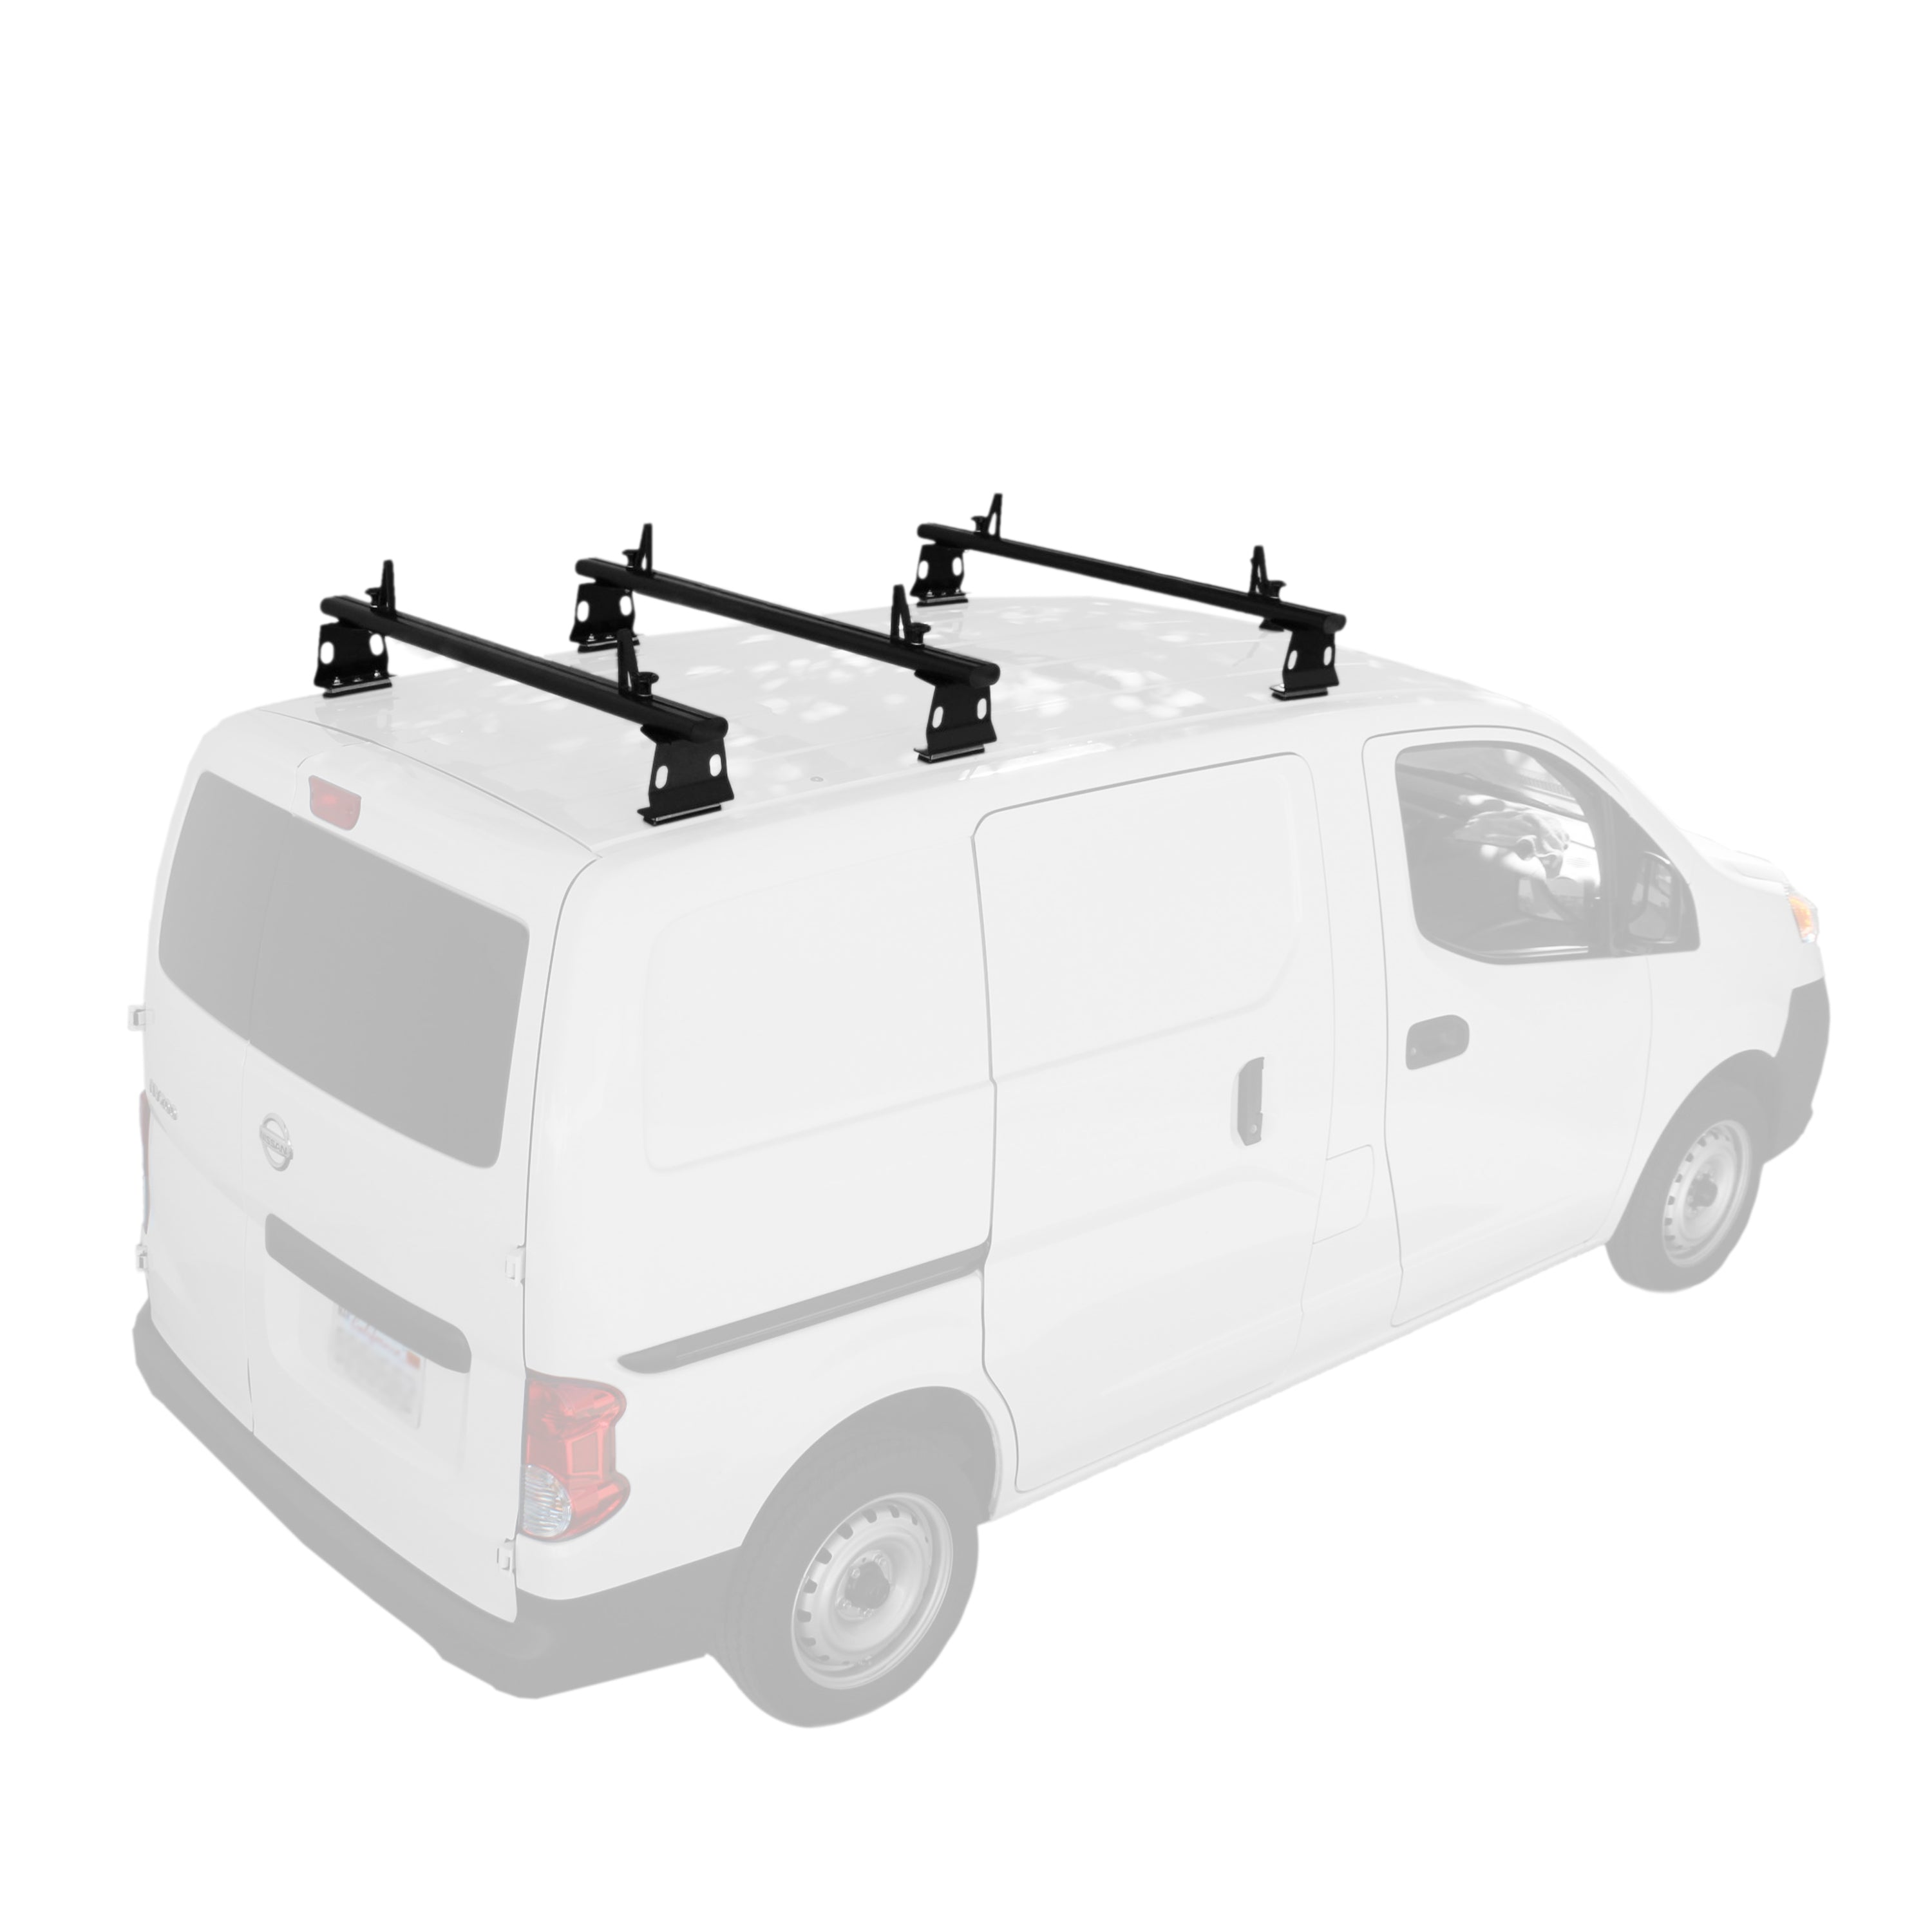 vcc with curb quick prime street rack design for ladder clamp two nissan van side crossbars